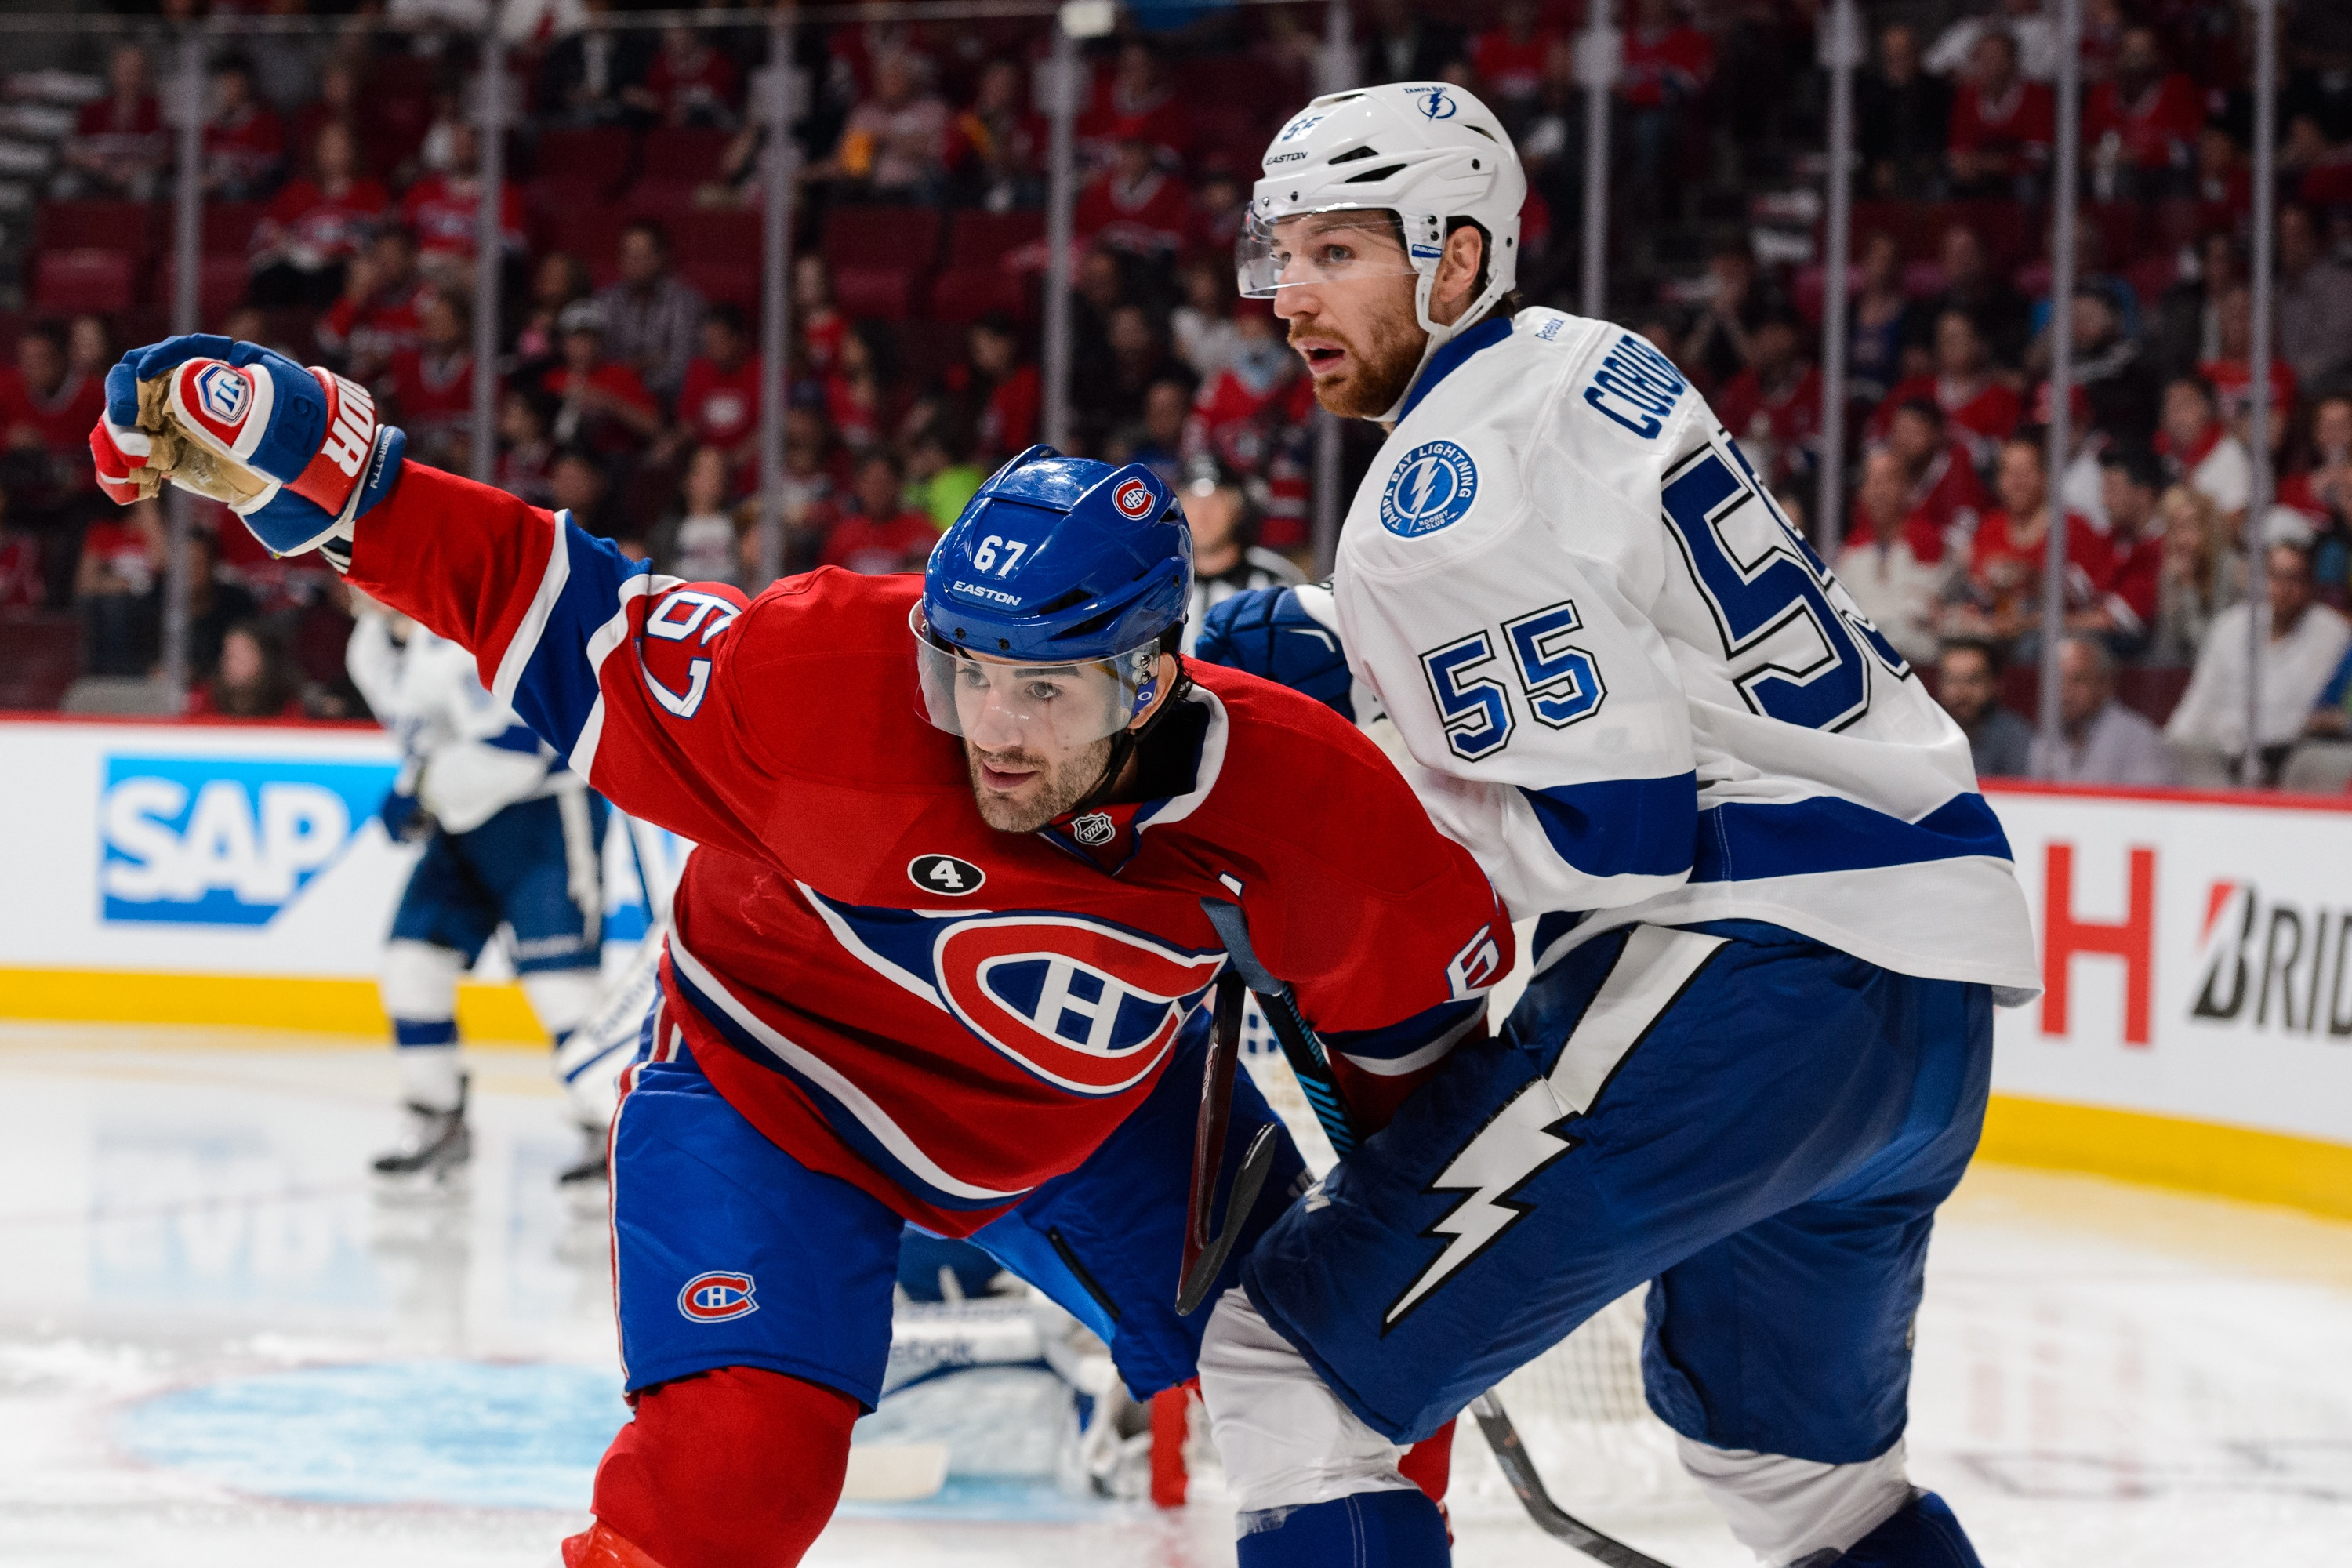 MONTREAL, QC - MAY 09:  Max Pacioretty #67 of the Montreal Canadiens gets tangled up with Braydon Coburn #55 of the Tampa Bay Lightning in Game Five of the Eastern Conference Semifinals during the 2015 NHL Stanley Cup Playoffs at the Bell Centre on May 9, 2015 in Montreal, Quebec, Canada. (Photo by Minas Panagiotakis/Getty Images)